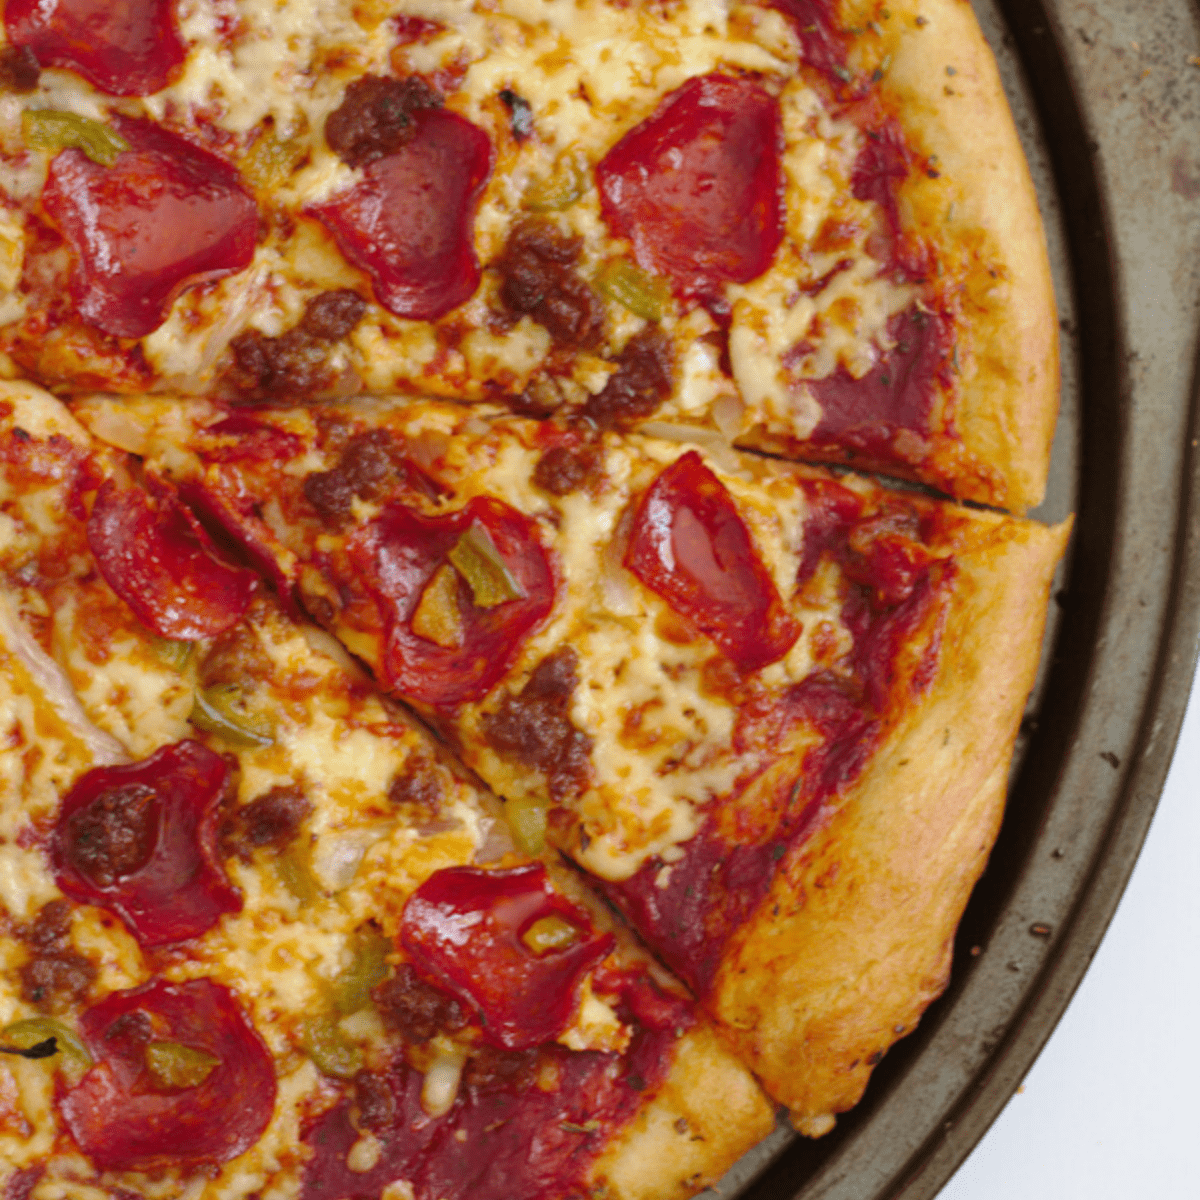 An above view of a homemade pizza.